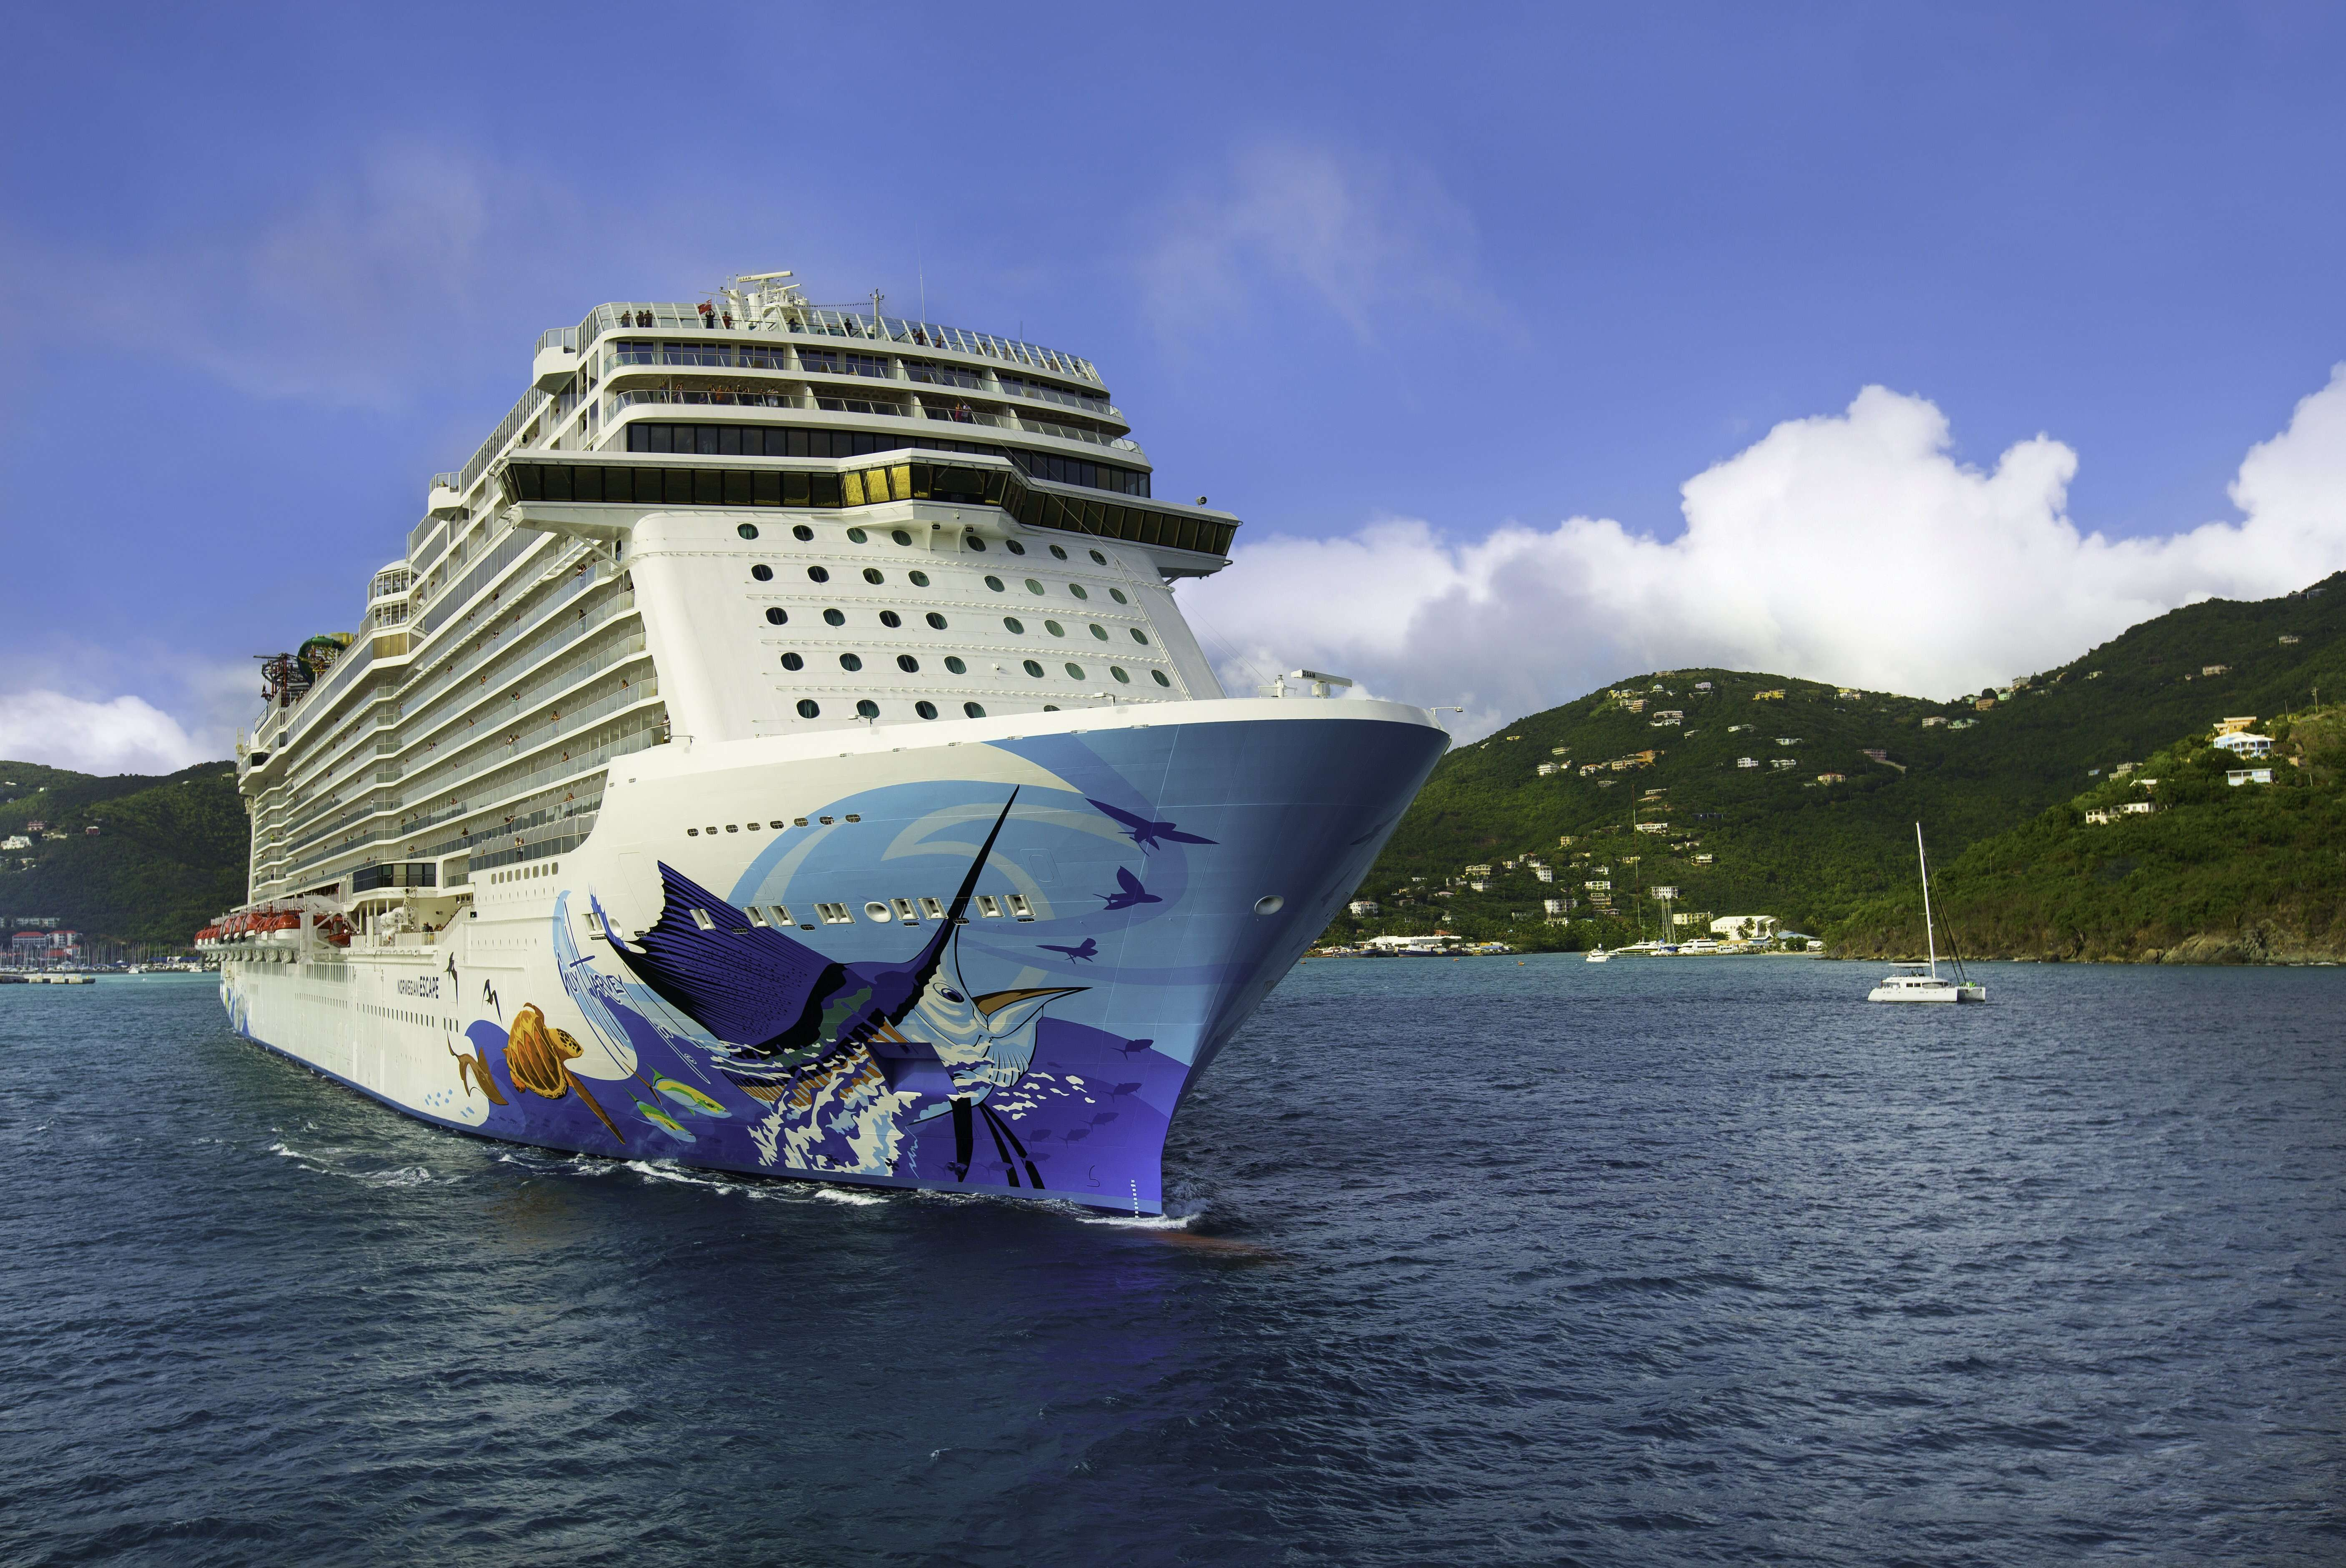 Norwegian Cruise Line - 6 free offers plus up to $300 onboard credit!